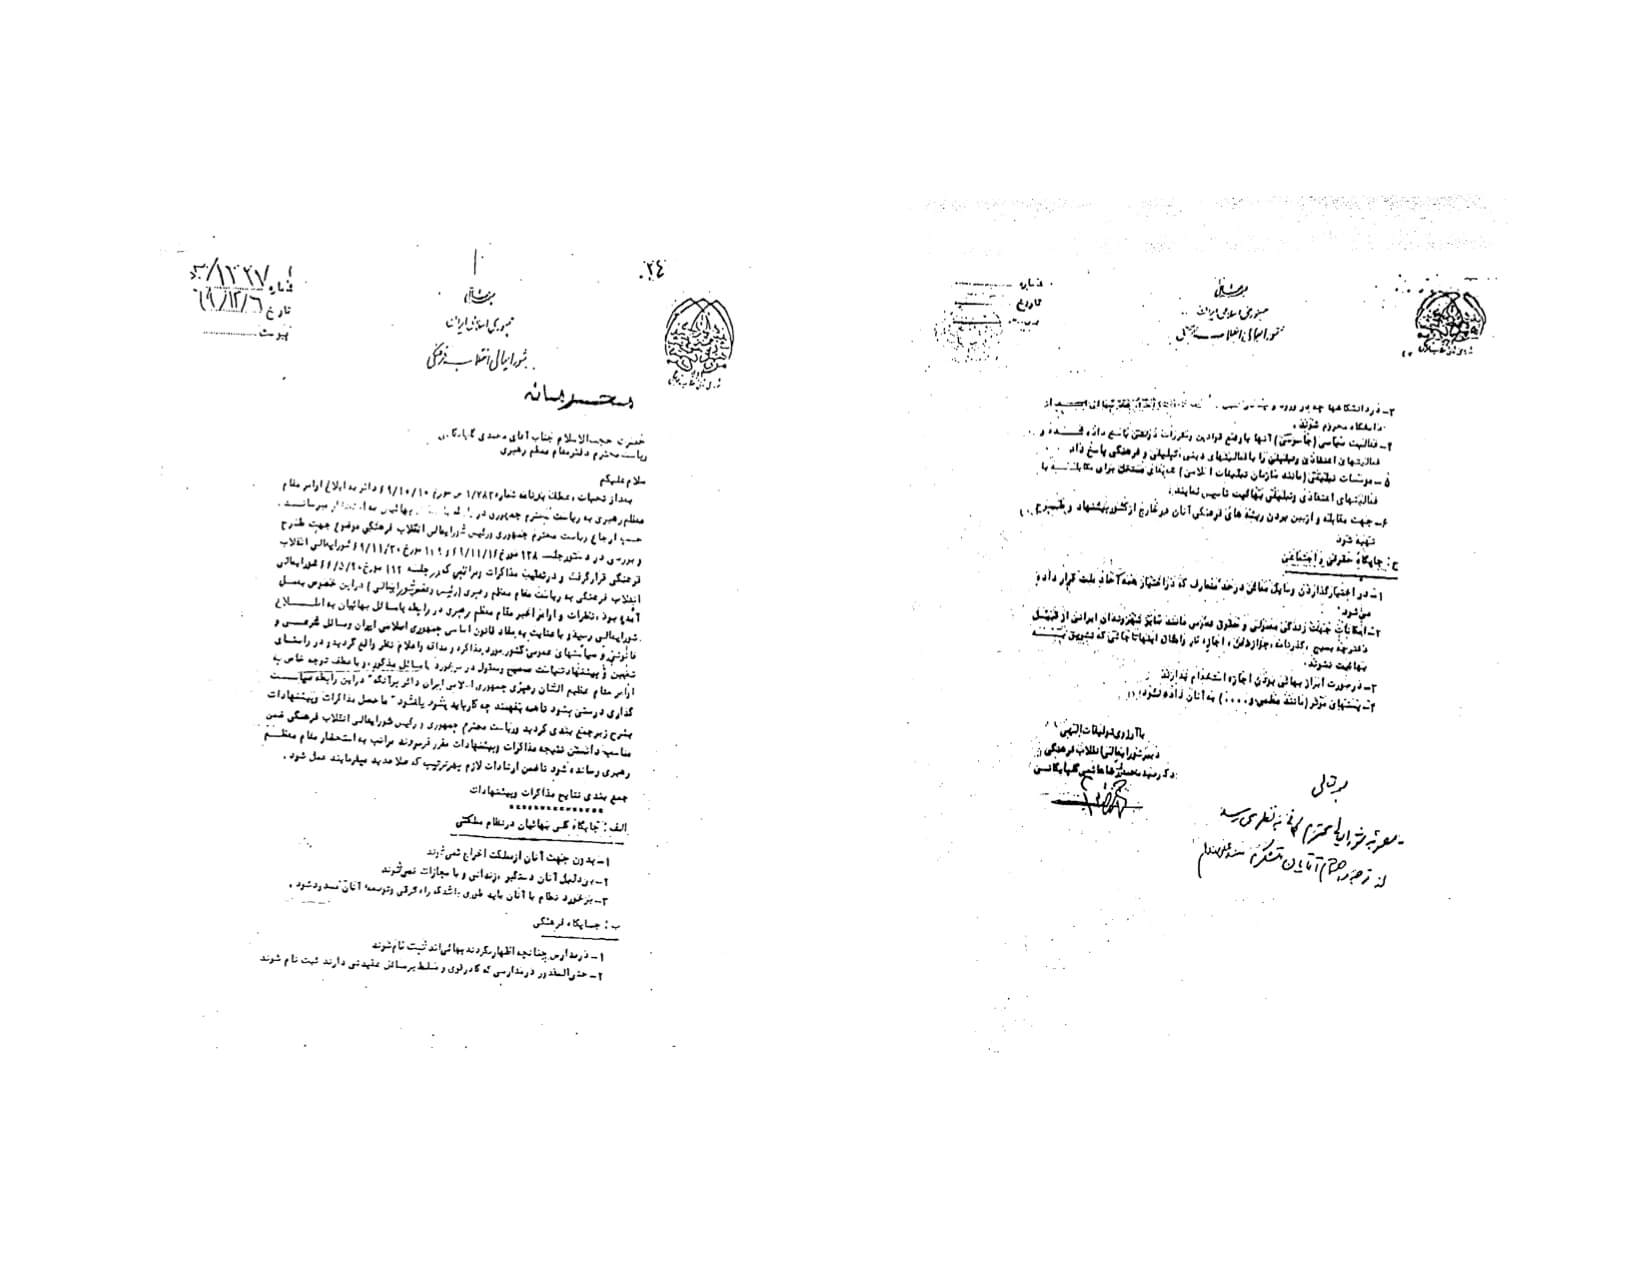 The 1991 Iranian government memorandum, in Persian, outlining planned persecution of Baha'is